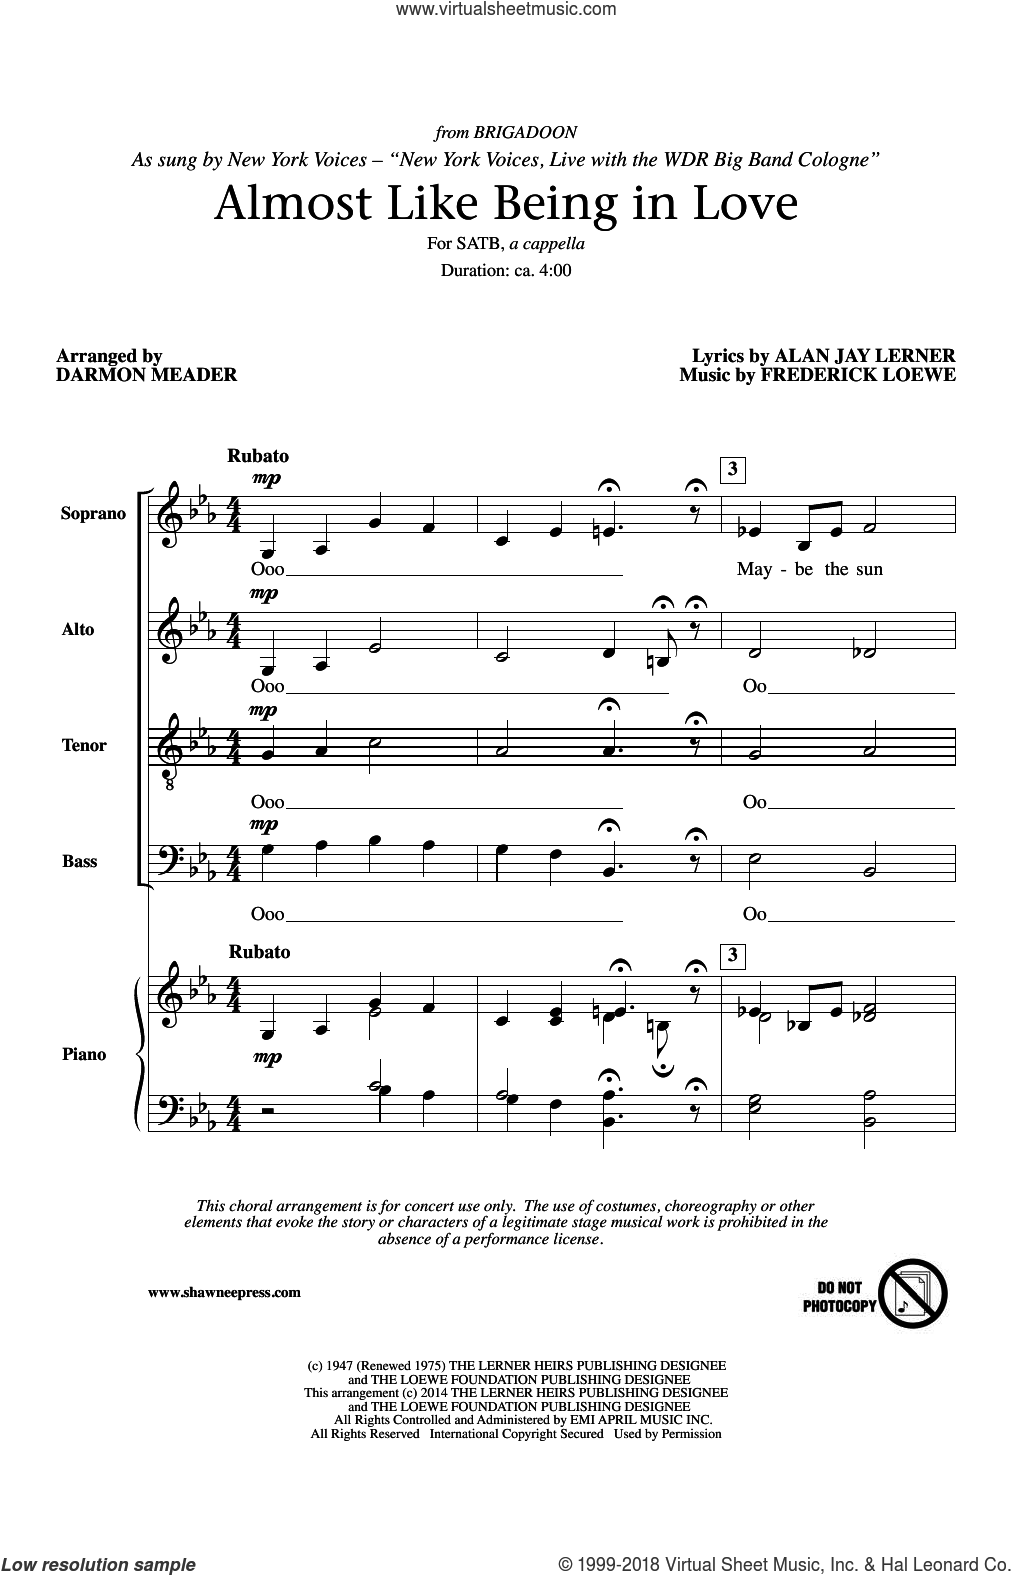 Almost Like Being In Love sheet music for choir and piano (SATB) by Darmon Meader, Gene Kelly, Alan Jay Lerner and Frederick Loewe. Score Image Preview.